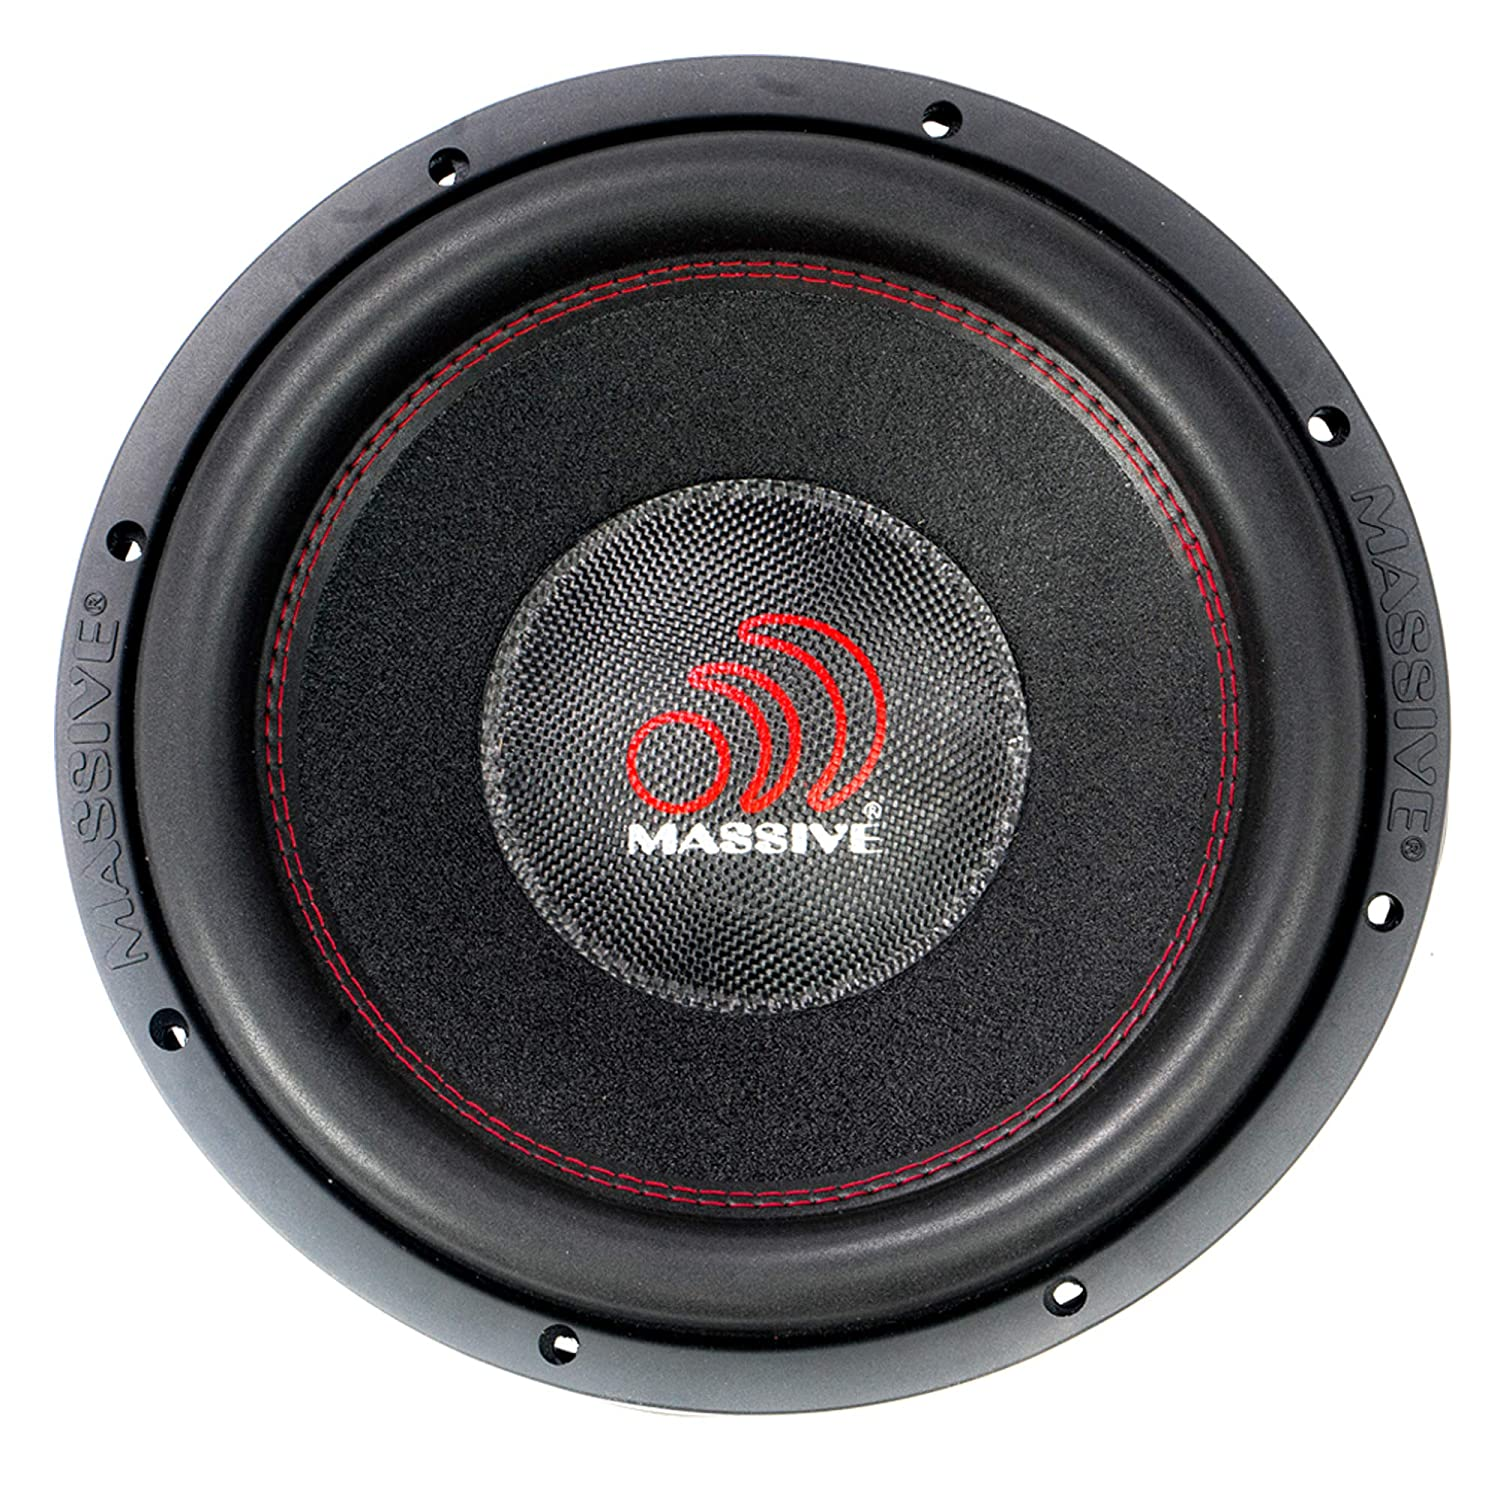 3 Inch Voice Coil SPL Extreme Bass Woofer 12 Inch Car Audio 4,000 Watt HippoXL Series Competition Subwoofer Sold Individually Dual 4 Ohm Car Subwoofer by Massive Audio HippoXL124